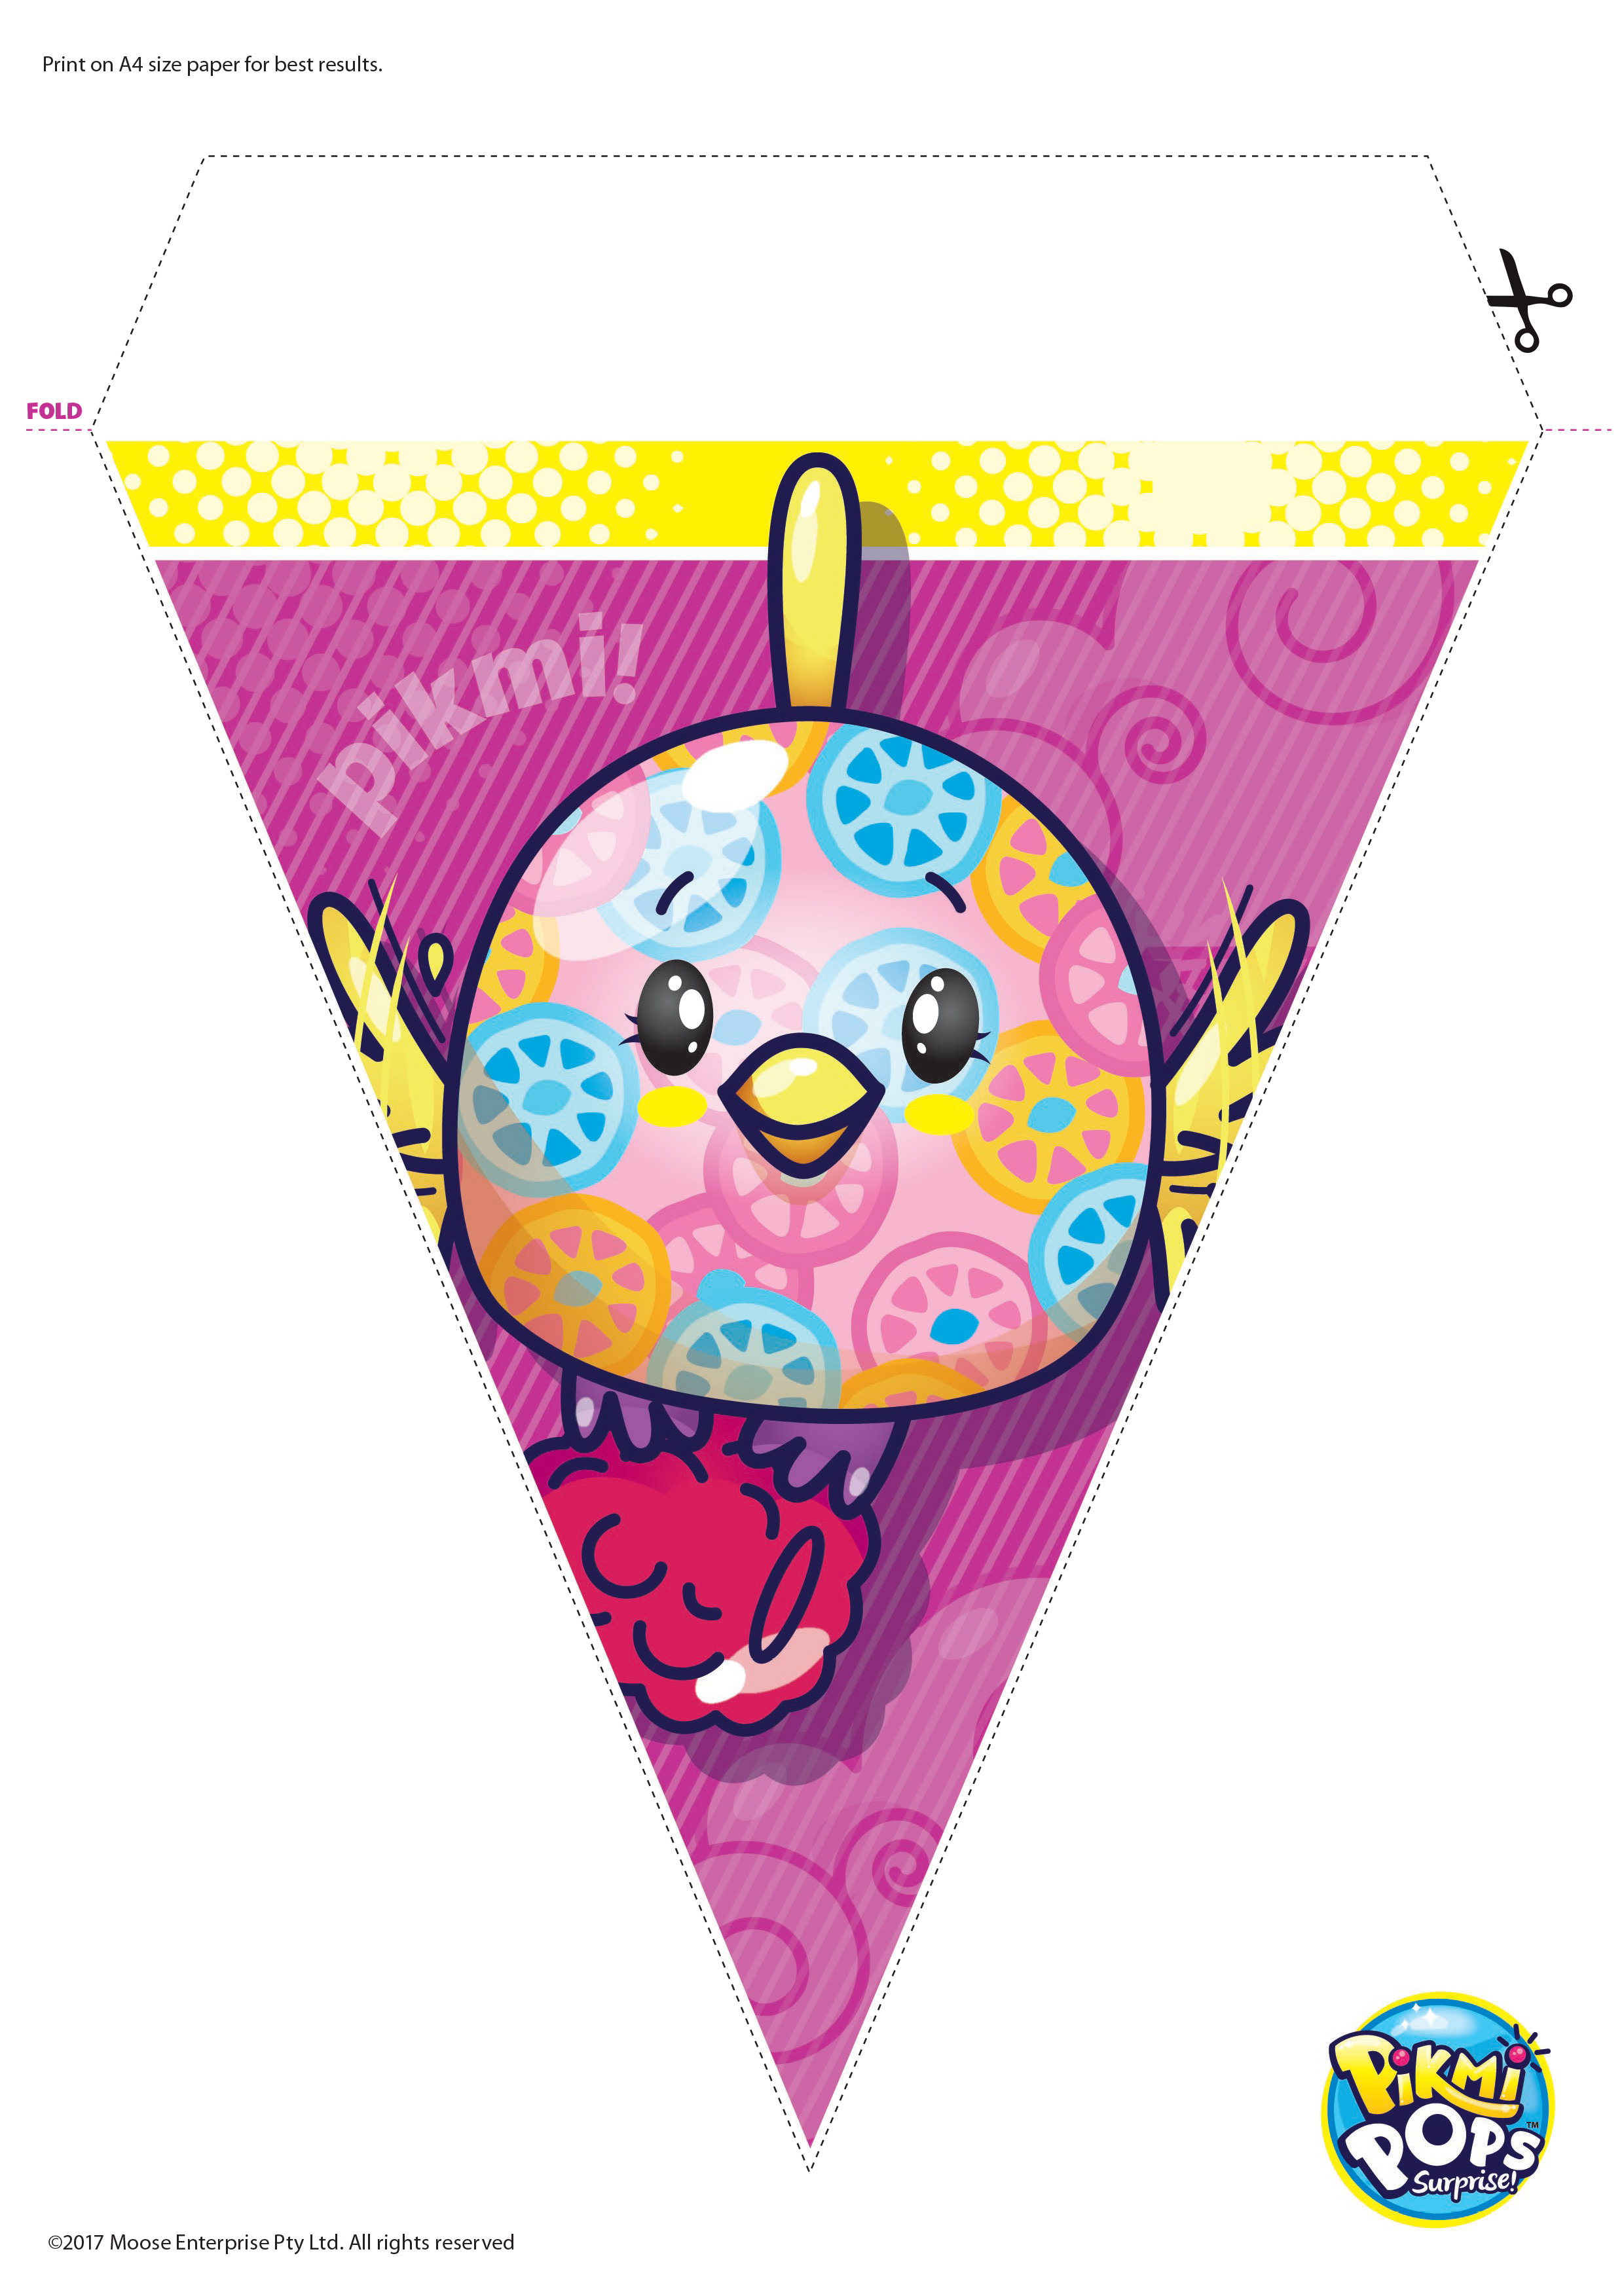 Download fun activities and colorins to print out and play with Pikmi Pops Prima Toys